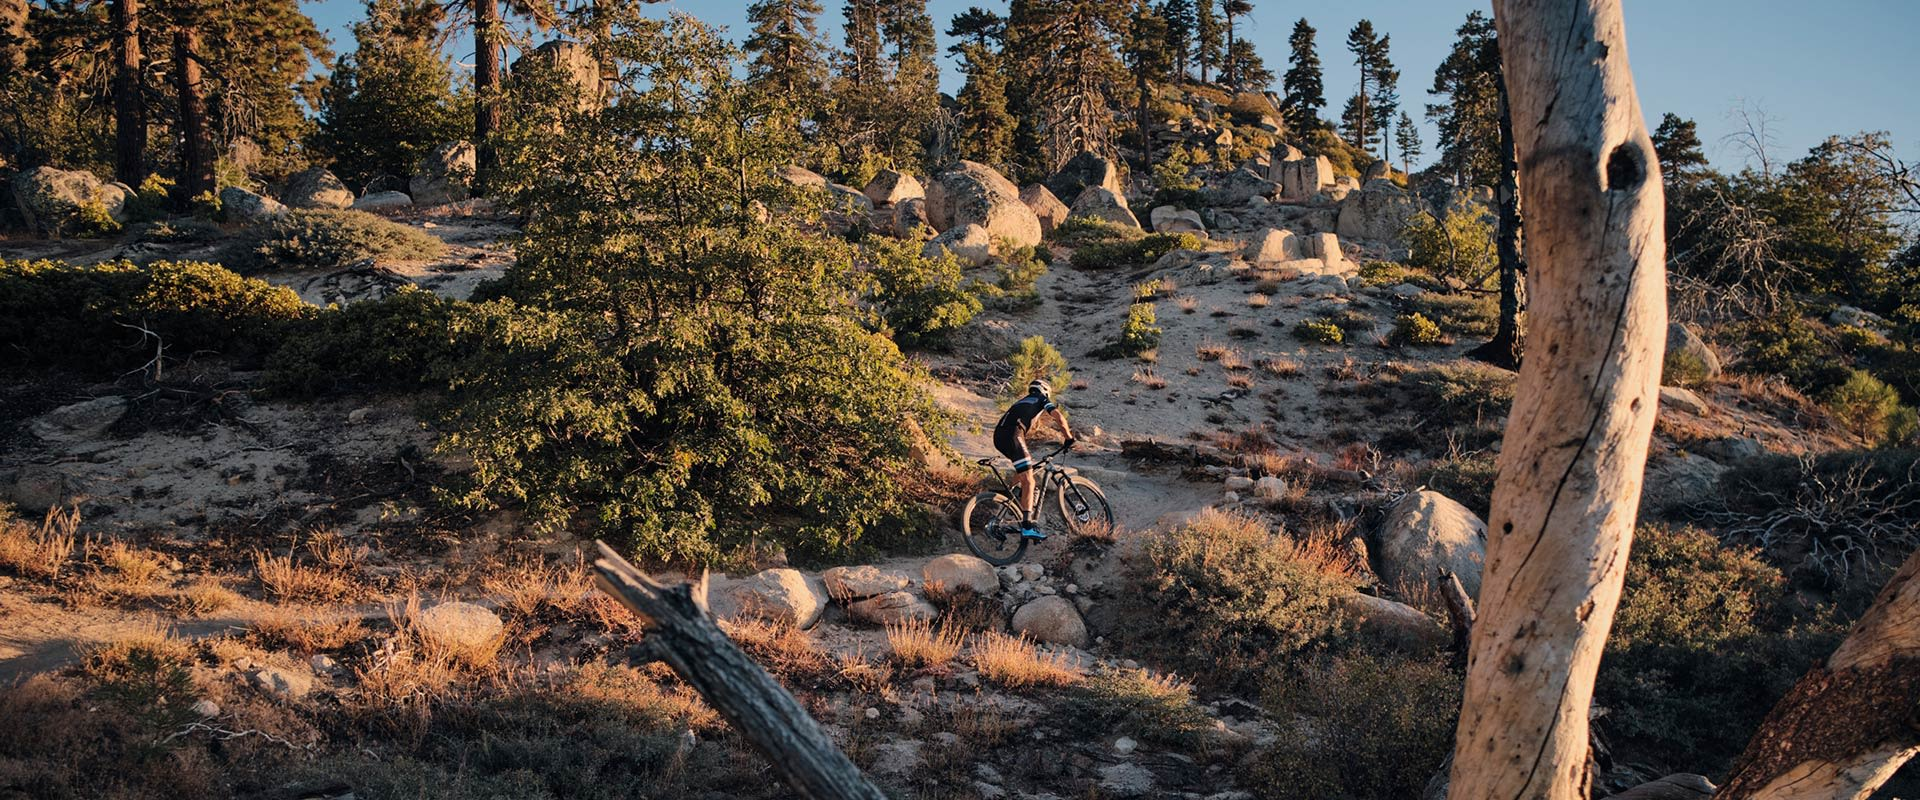 XTC Advanced SL 29 (2020) | Giant Bicycles United States